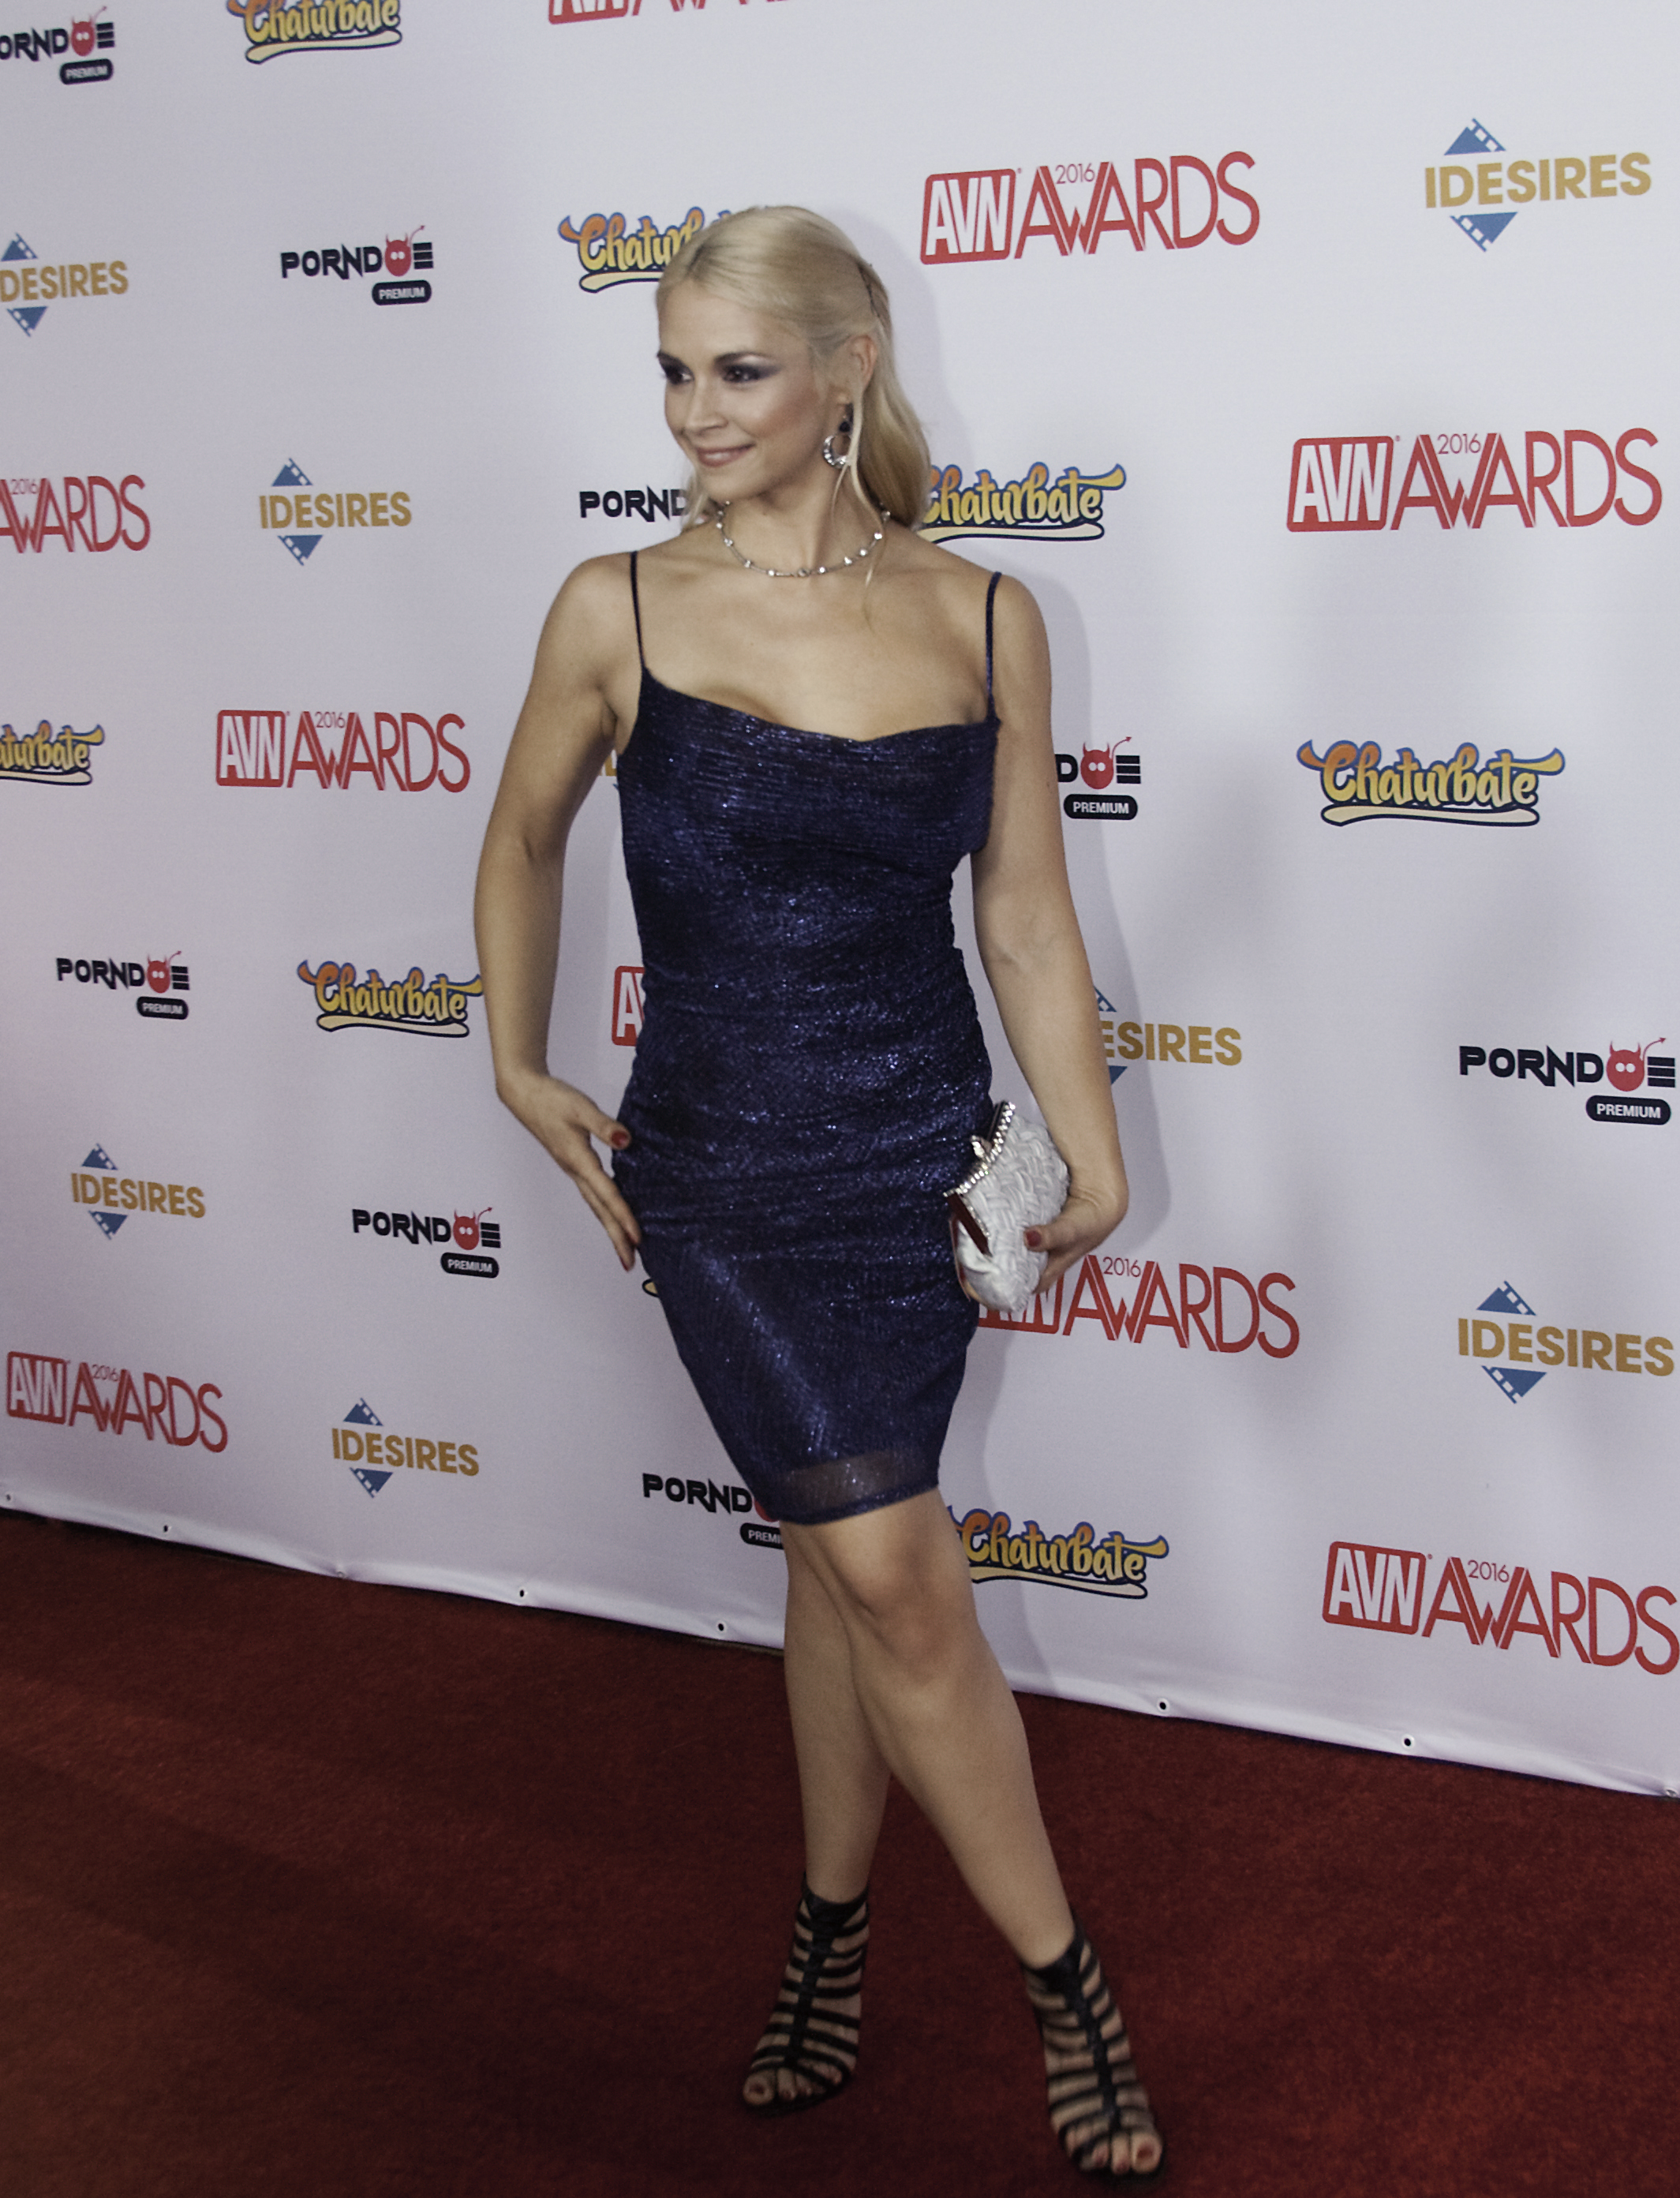 Sarah Vandella at AVN Awards 2016 (26645443626).jpg